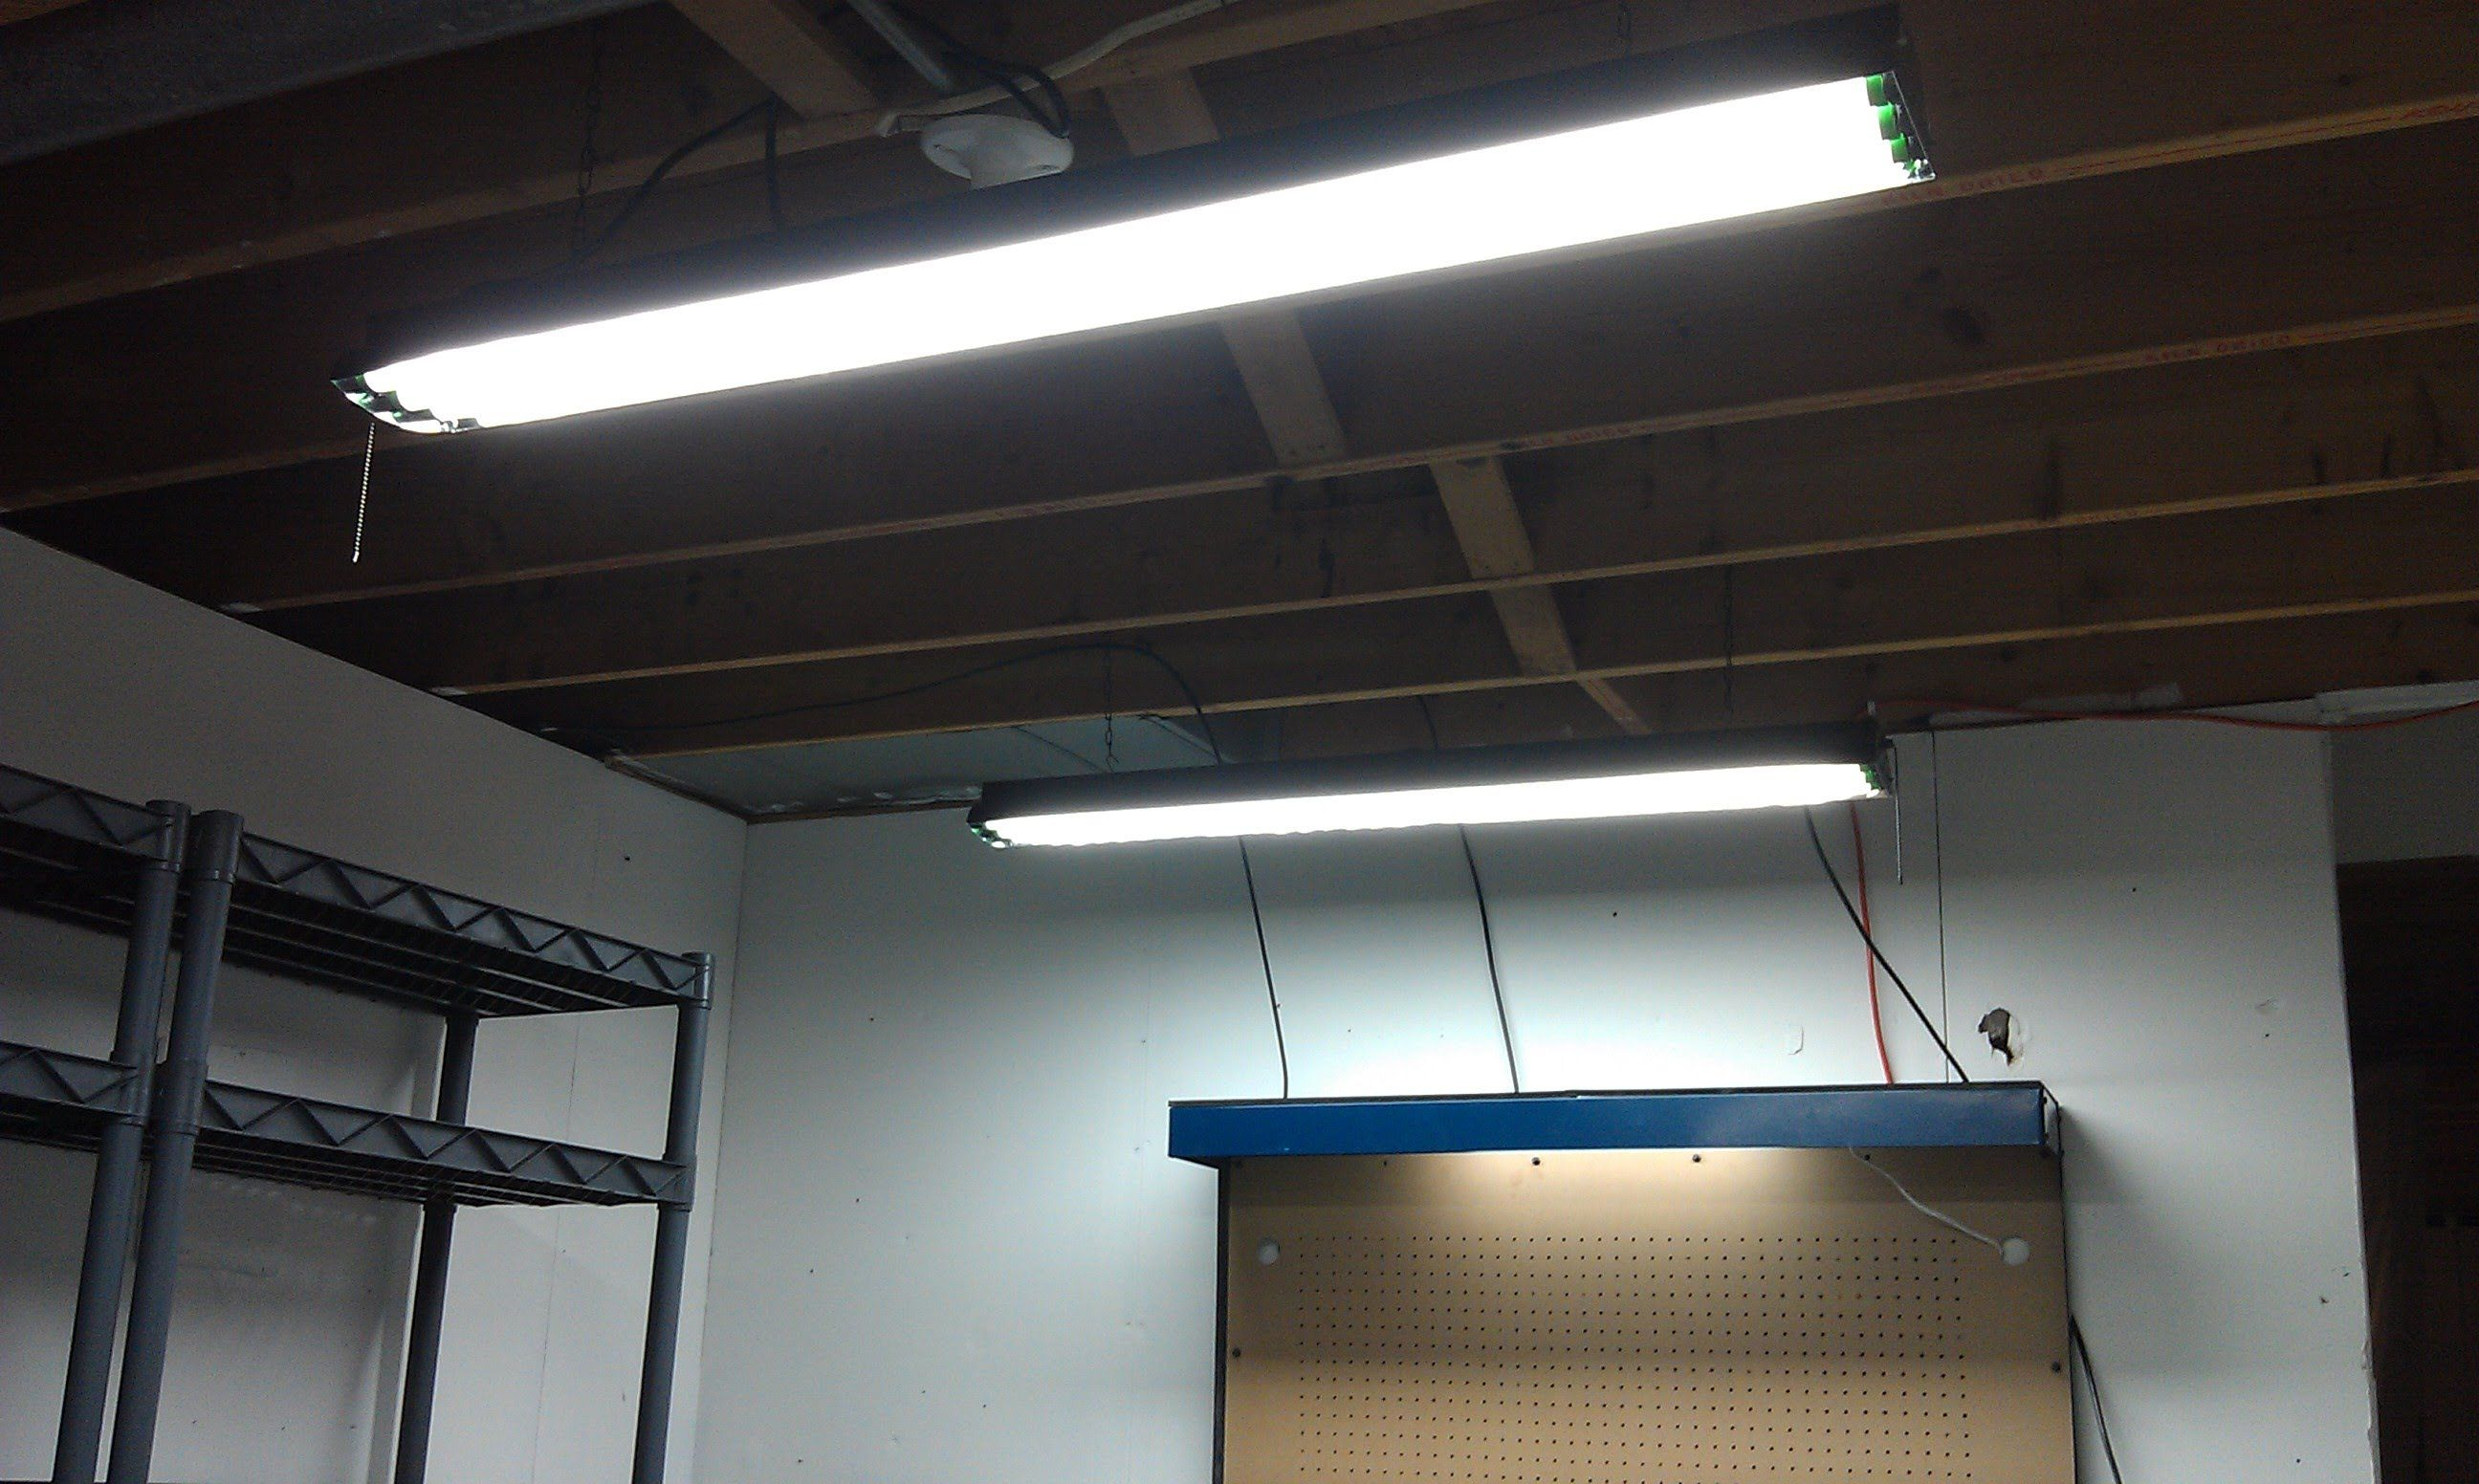 Choosing Garage Lighting Ideas Whether Interior Or Exterior Can